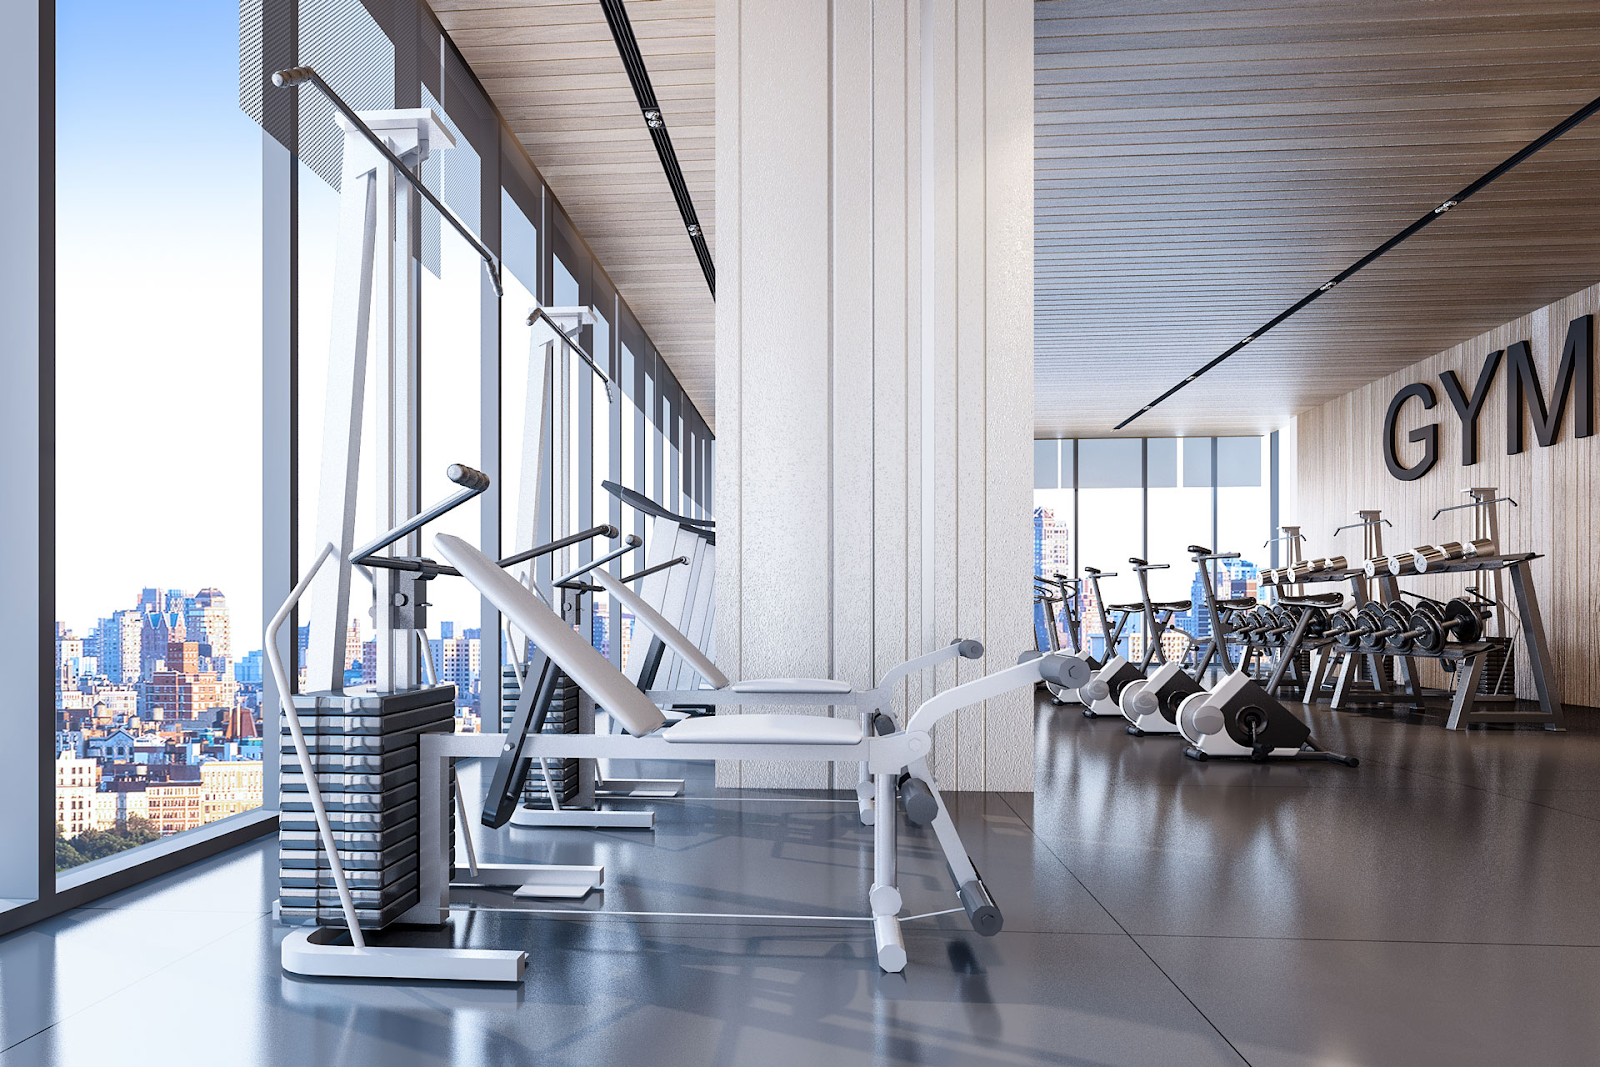 Gym-Rendering-and-what-you-can-earn-from-rendering-fitness-1